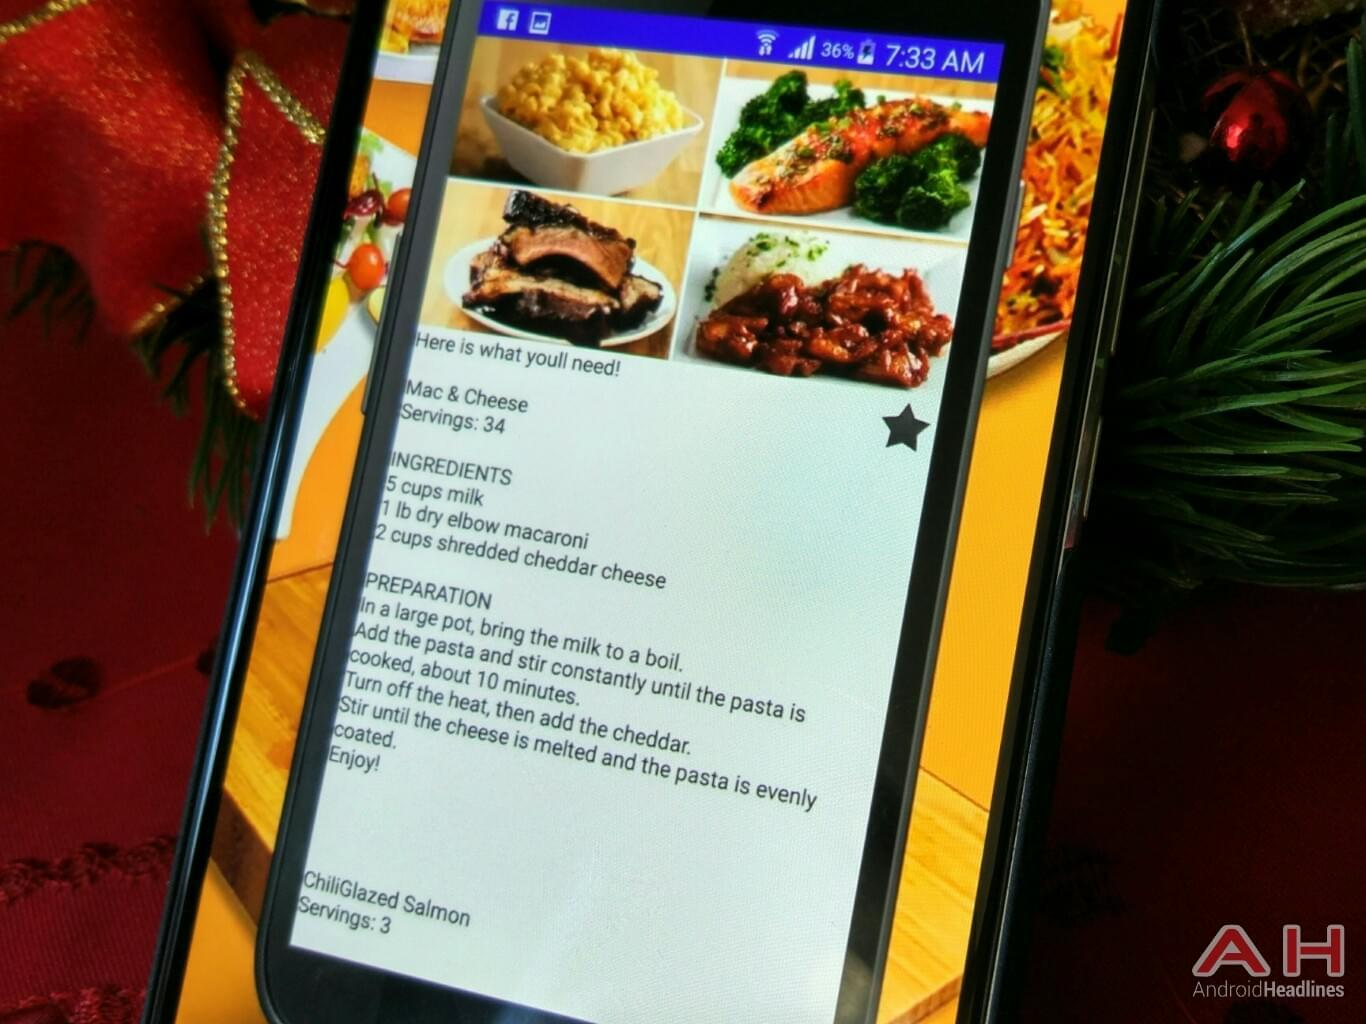 Tasty app offers various cooking recipes and videos android news tasty app offers various cooking recipes and videos forumfinder Image collections